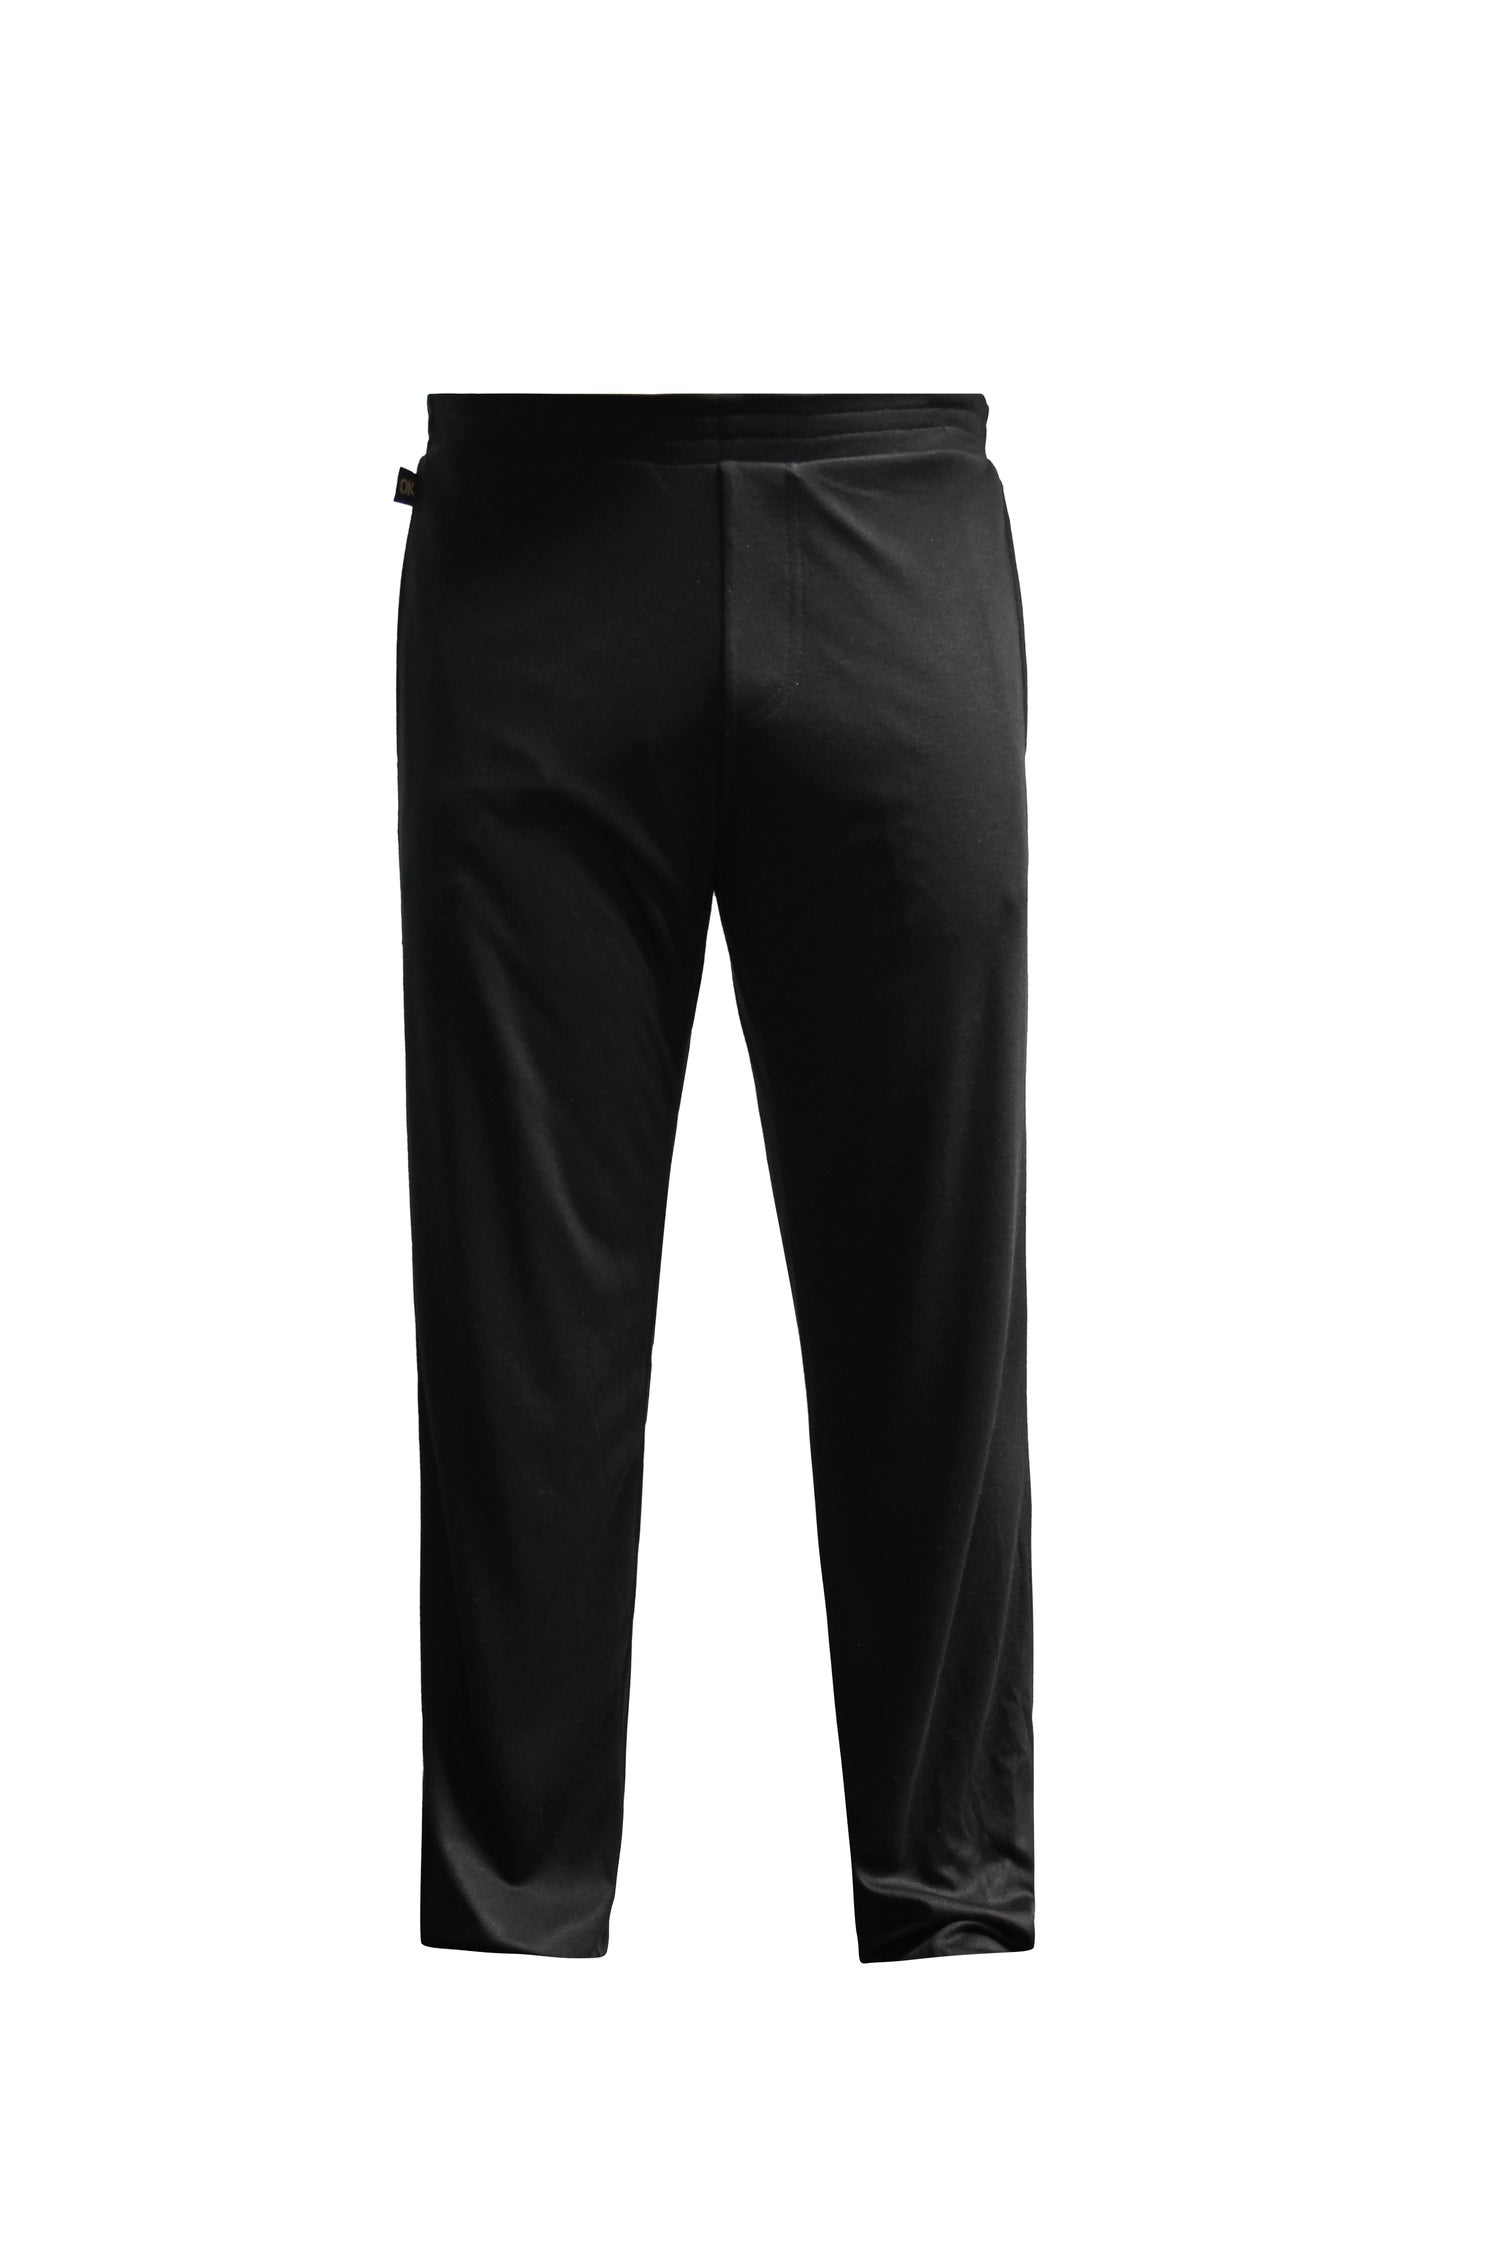 Image of Micro Rib Slouch Pant